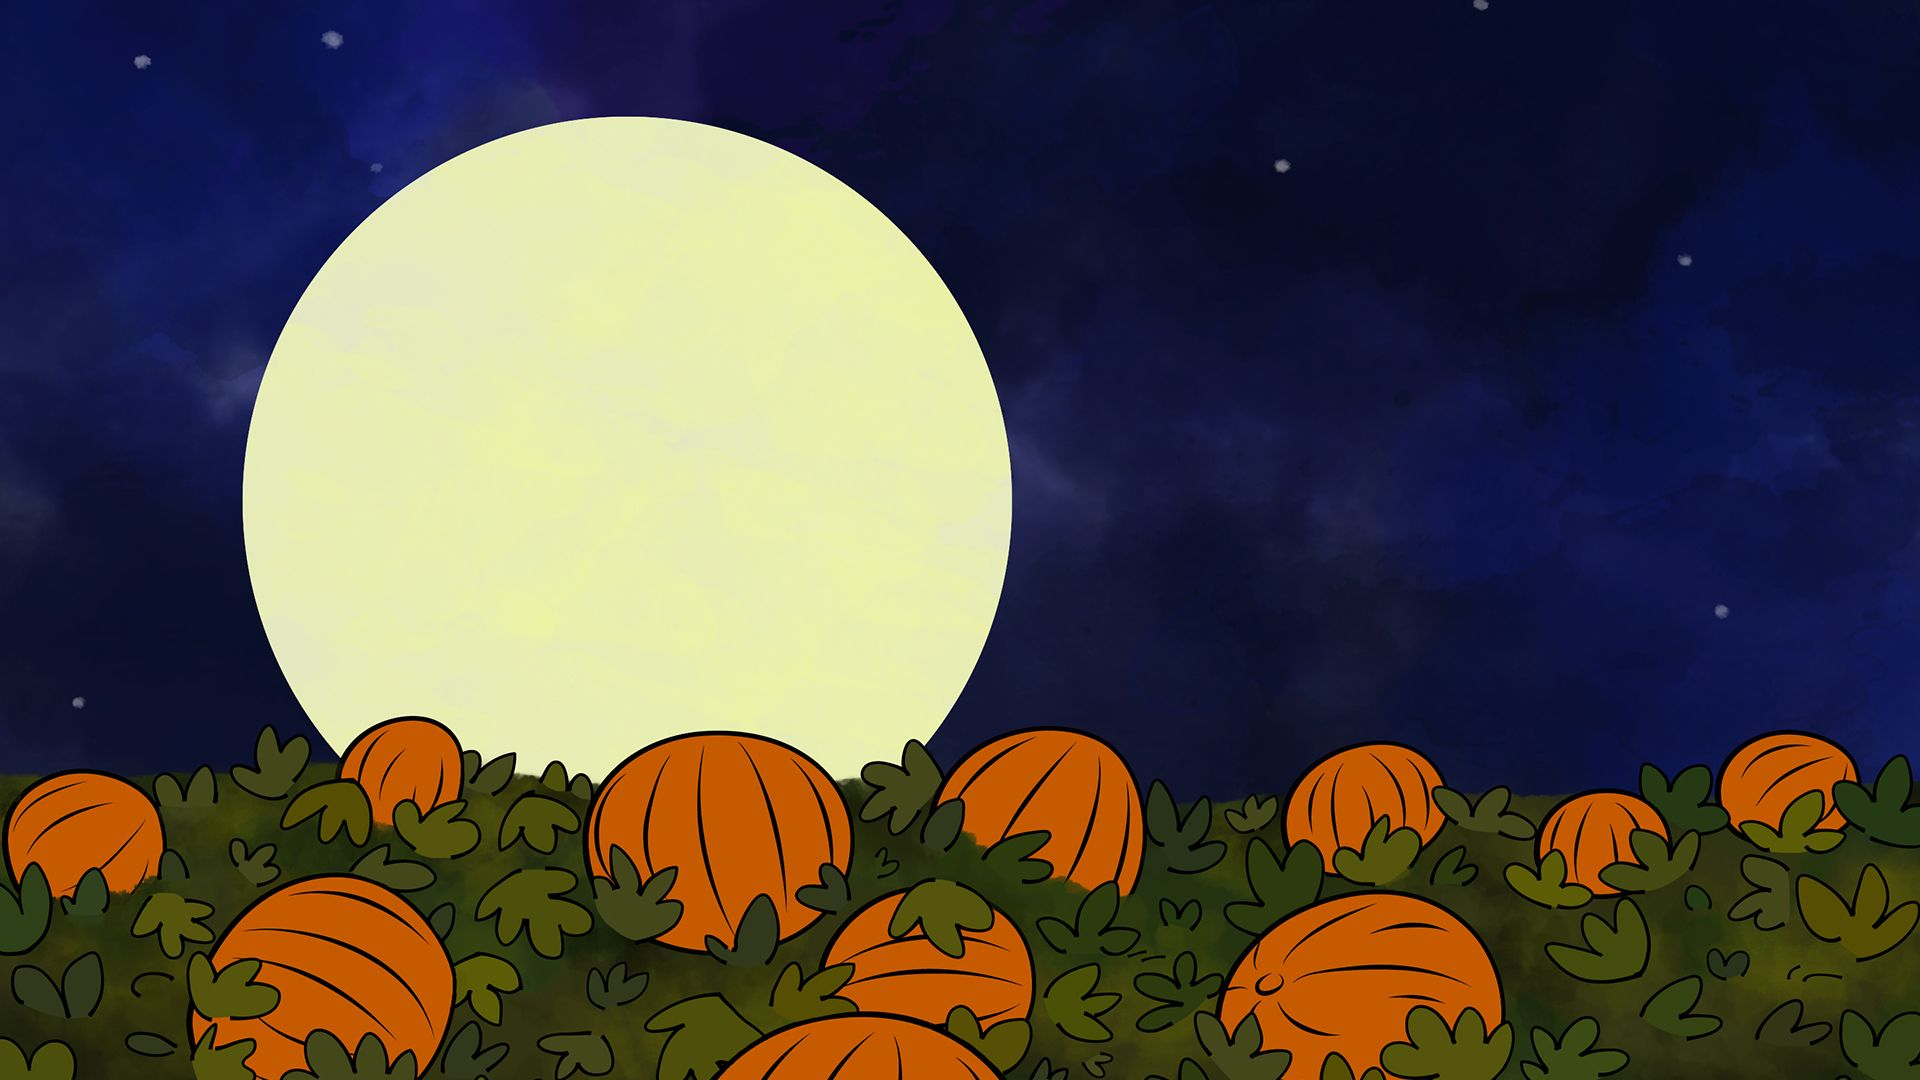 8d6fd67ce Great Pumpkin Charlie Brown Wallpaper - WallpaperSafari | The Great ...